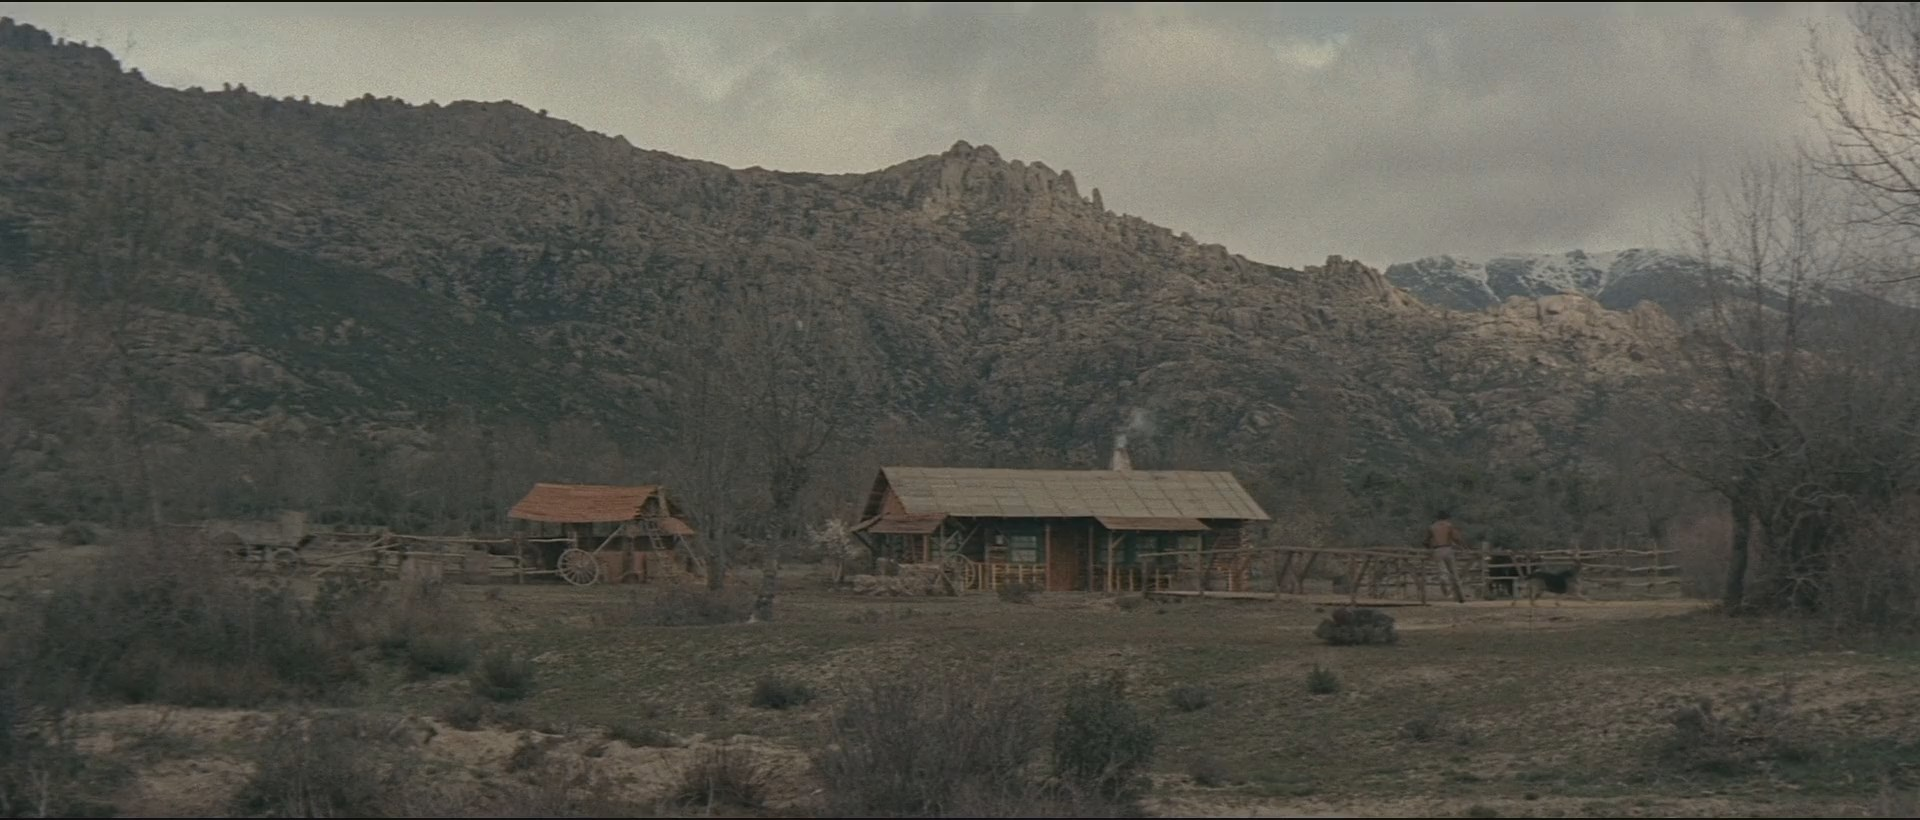 Hands of a Gunfighter / Ocaso de un pistolero (1965)